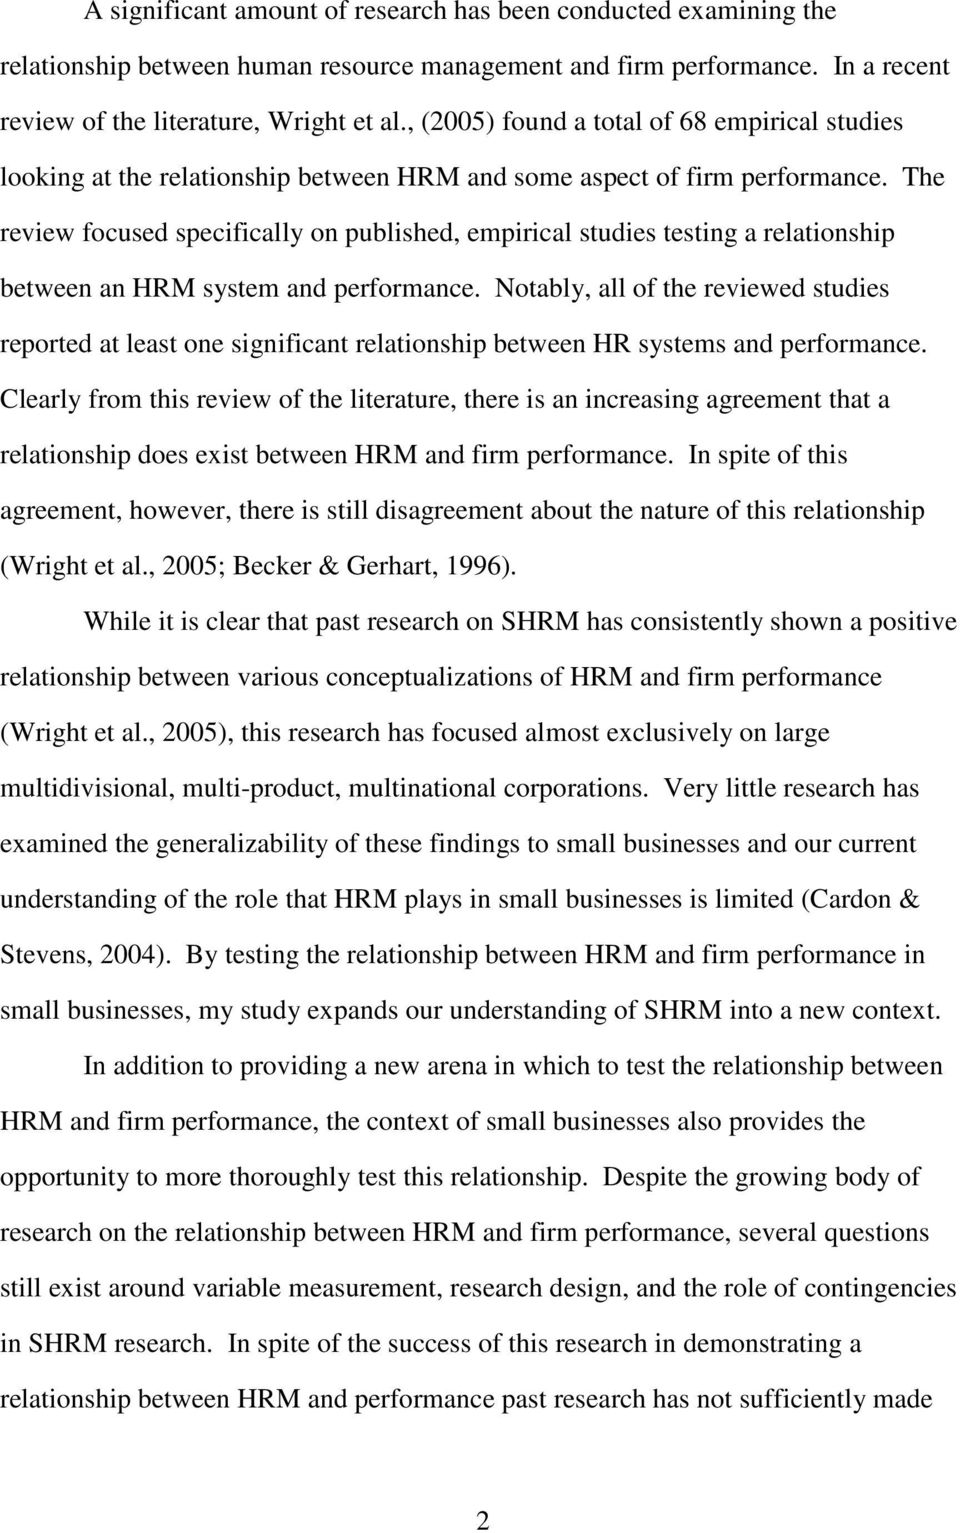 The review focused specifically on published, empirical studies testing a relationship between an HRM system and performance.